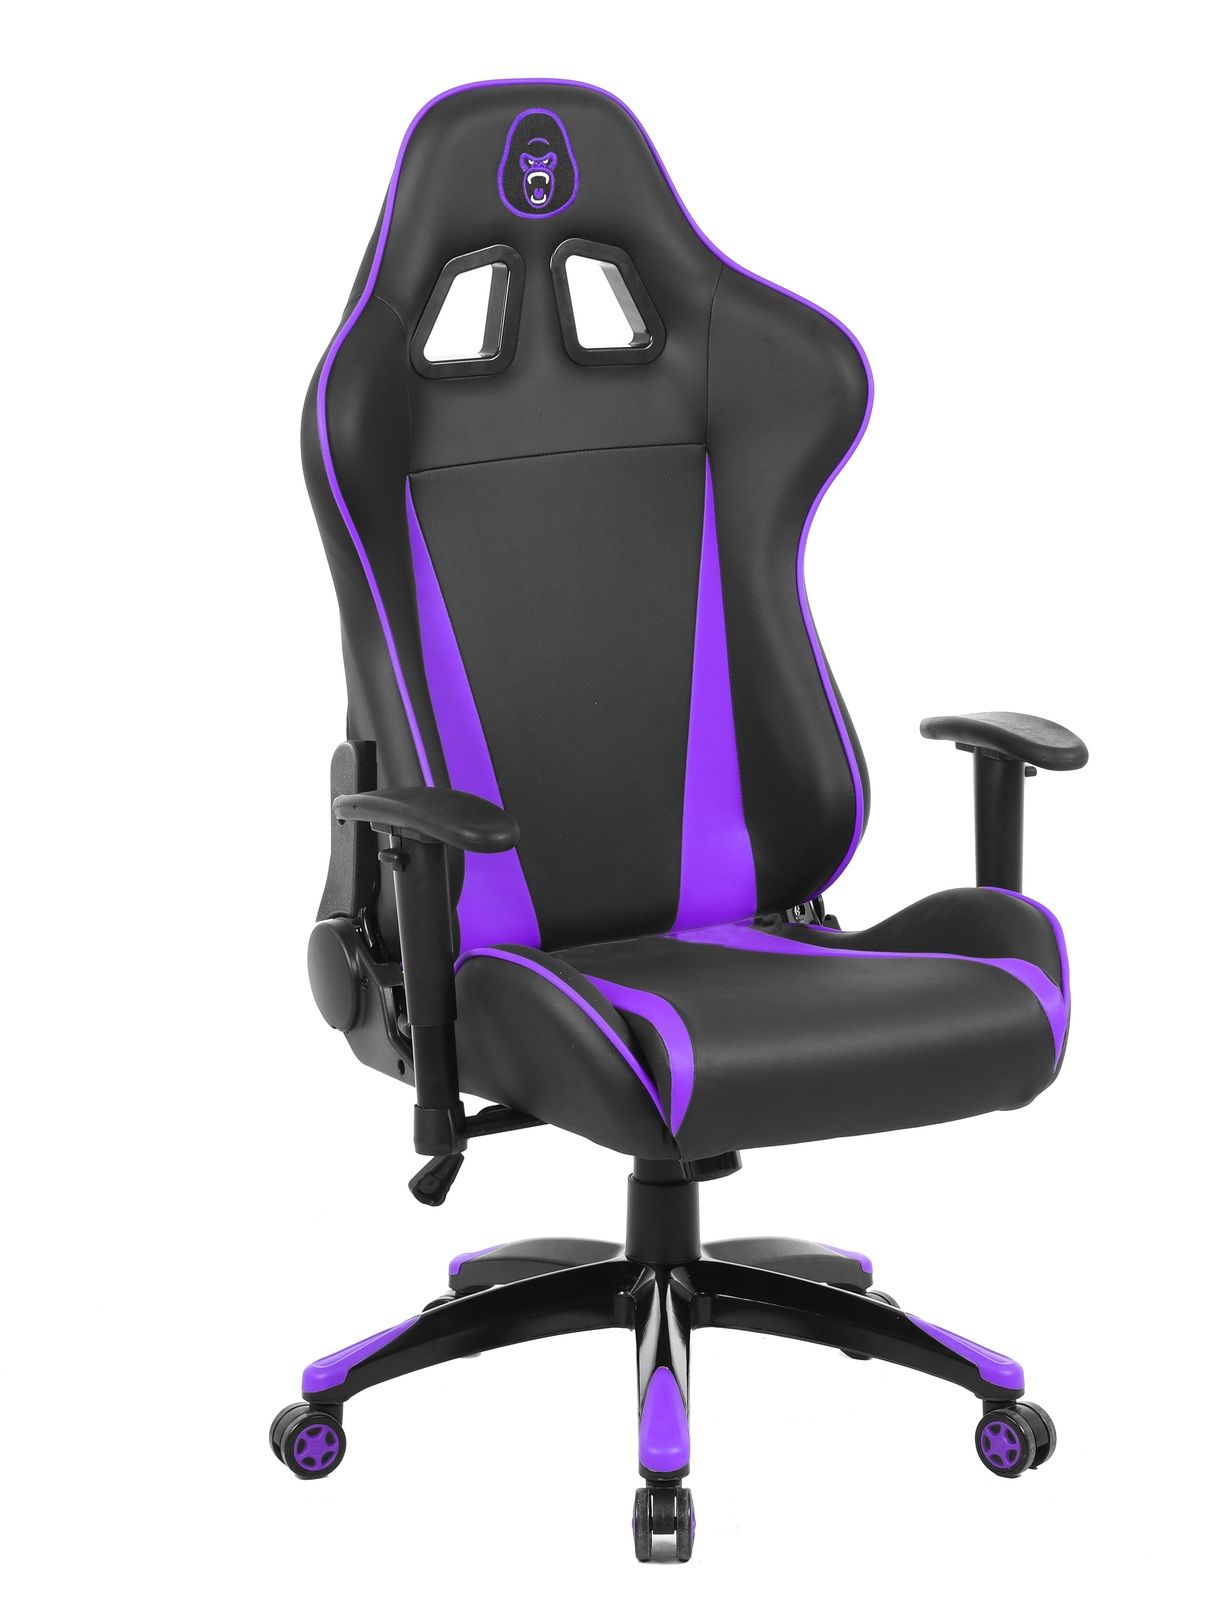 Gorilla Gaming Commander Chair - Purple & Black for  image